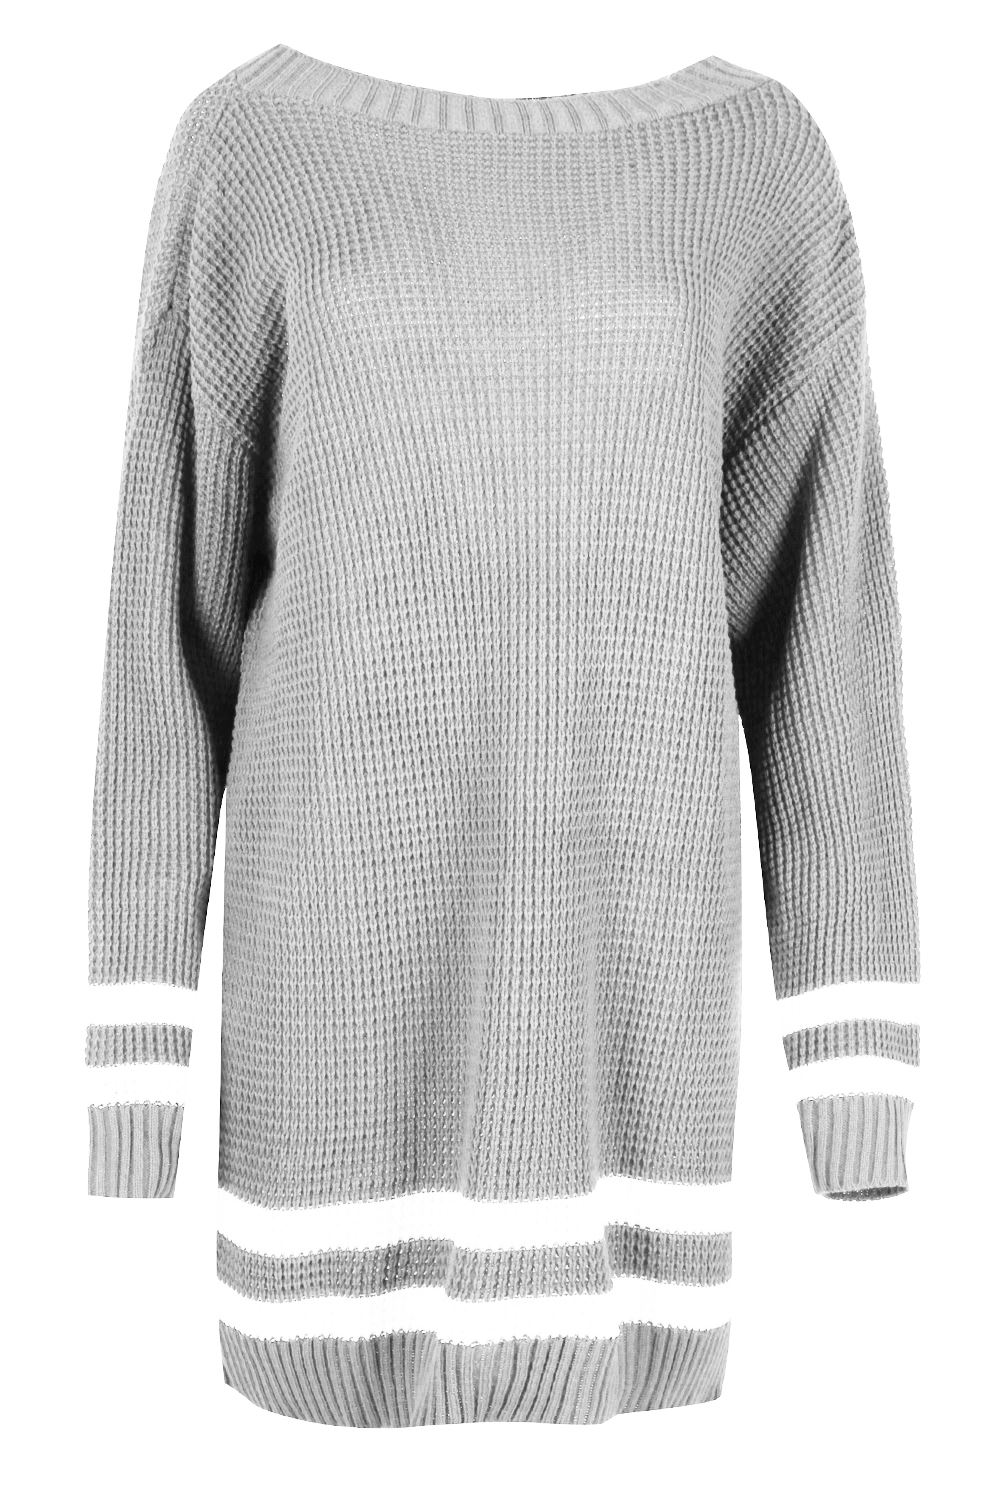 Womens-Oversized-Jumper-Ladies-Dress-Long-Sleeve-Chunky-Knitted-Long-Sweater-Top thumbnail 40